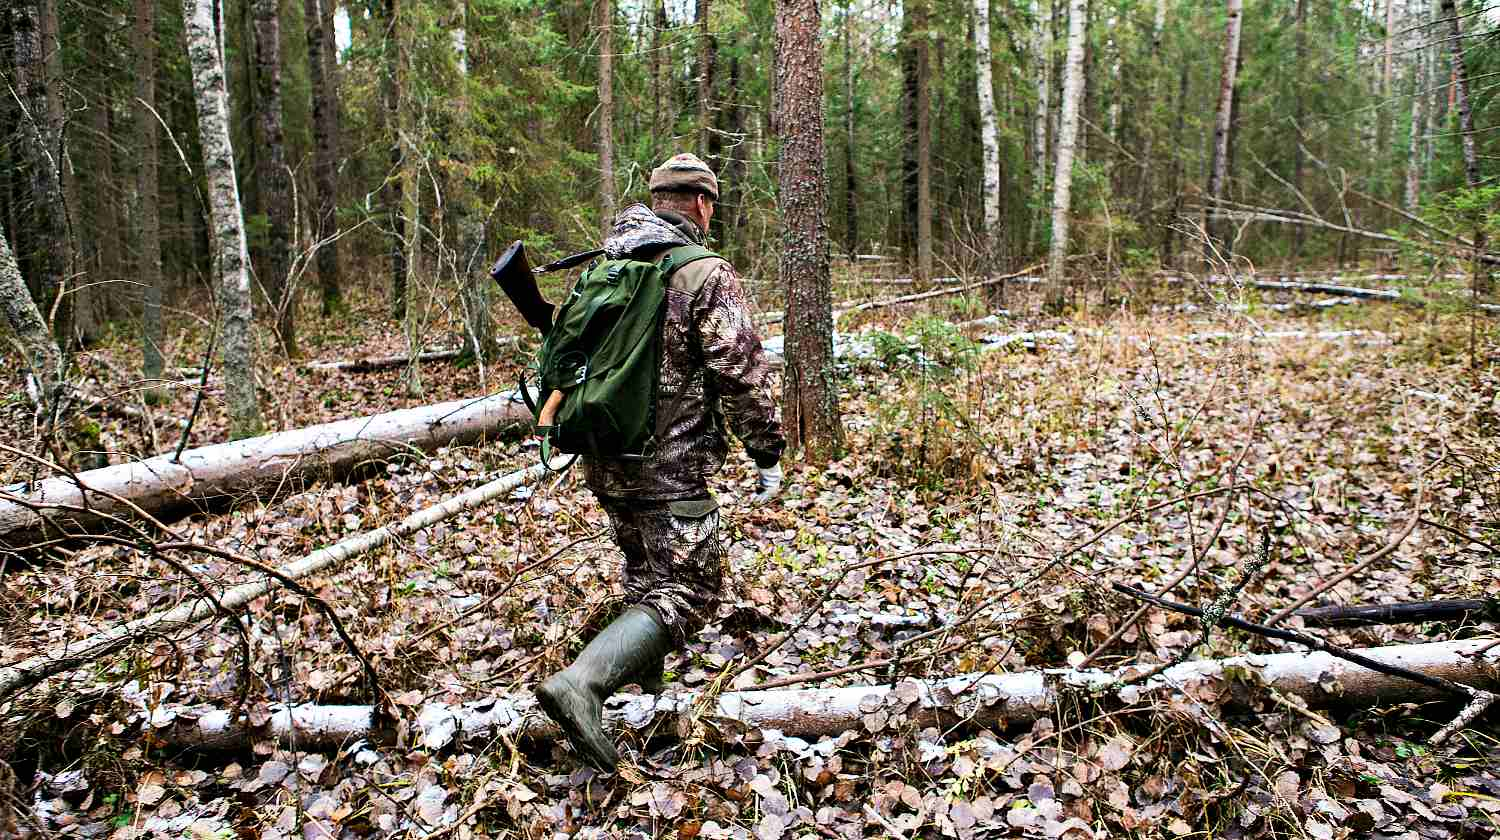 Man the hunter goes through the forest in rubber boots, with a backpack and a gun | Go Bag Guns | Getting Your Firearms In Order When SHTF | Featured